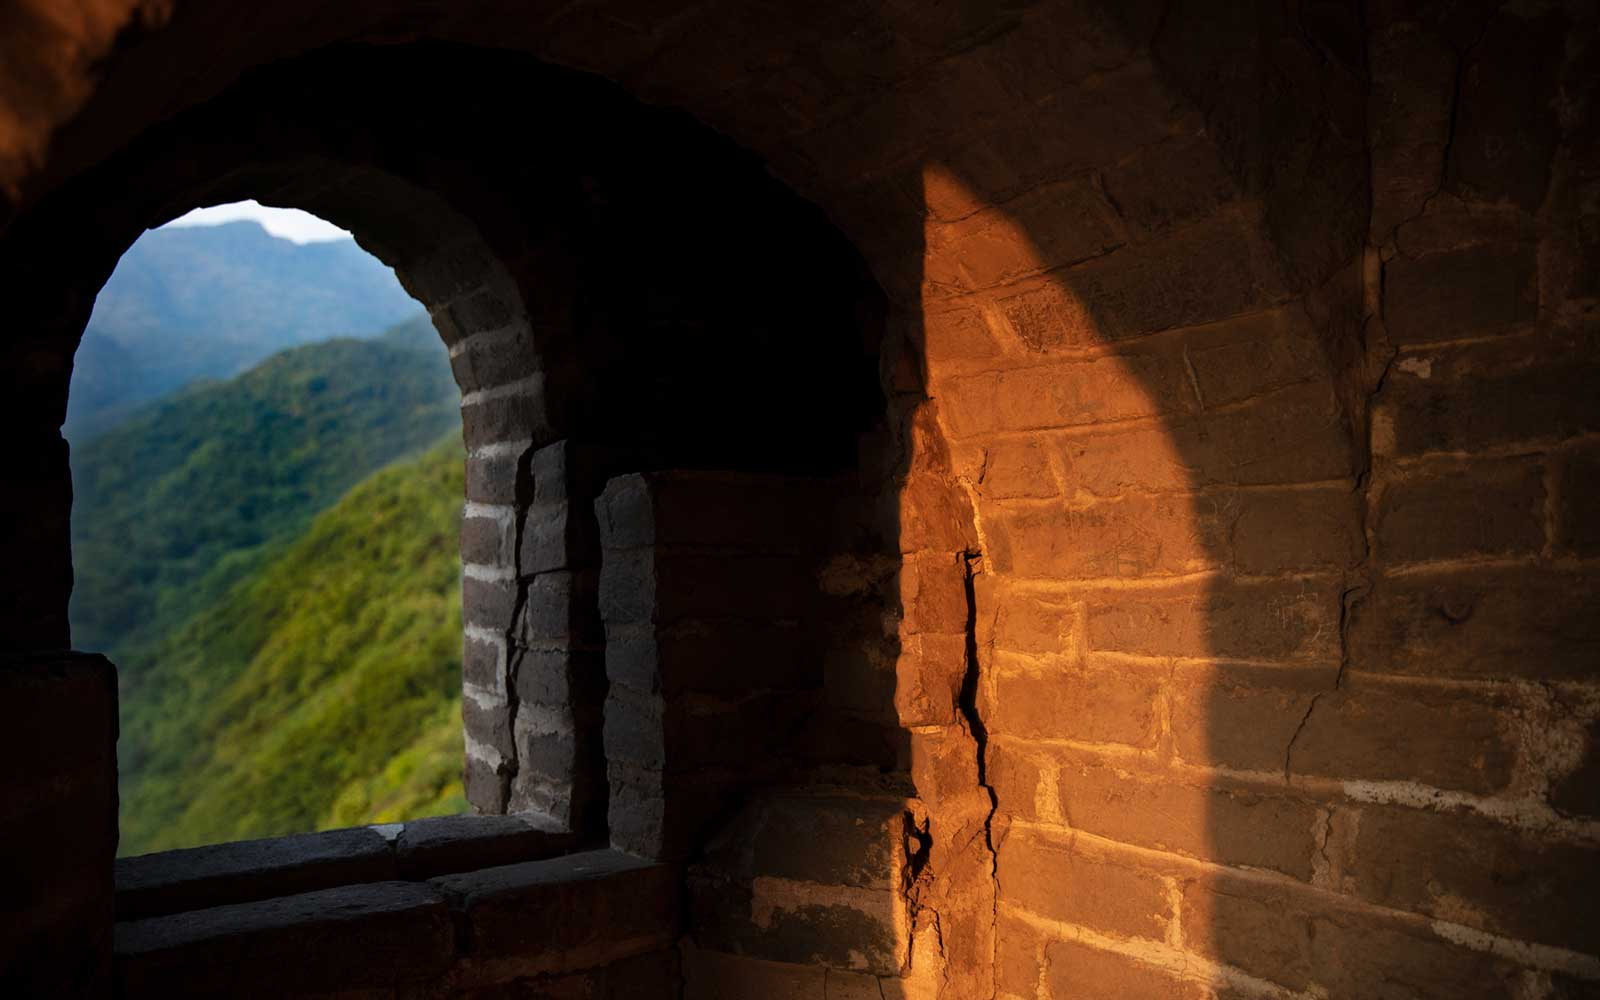 Airbnb Wonder Experience in The Great Wall of China